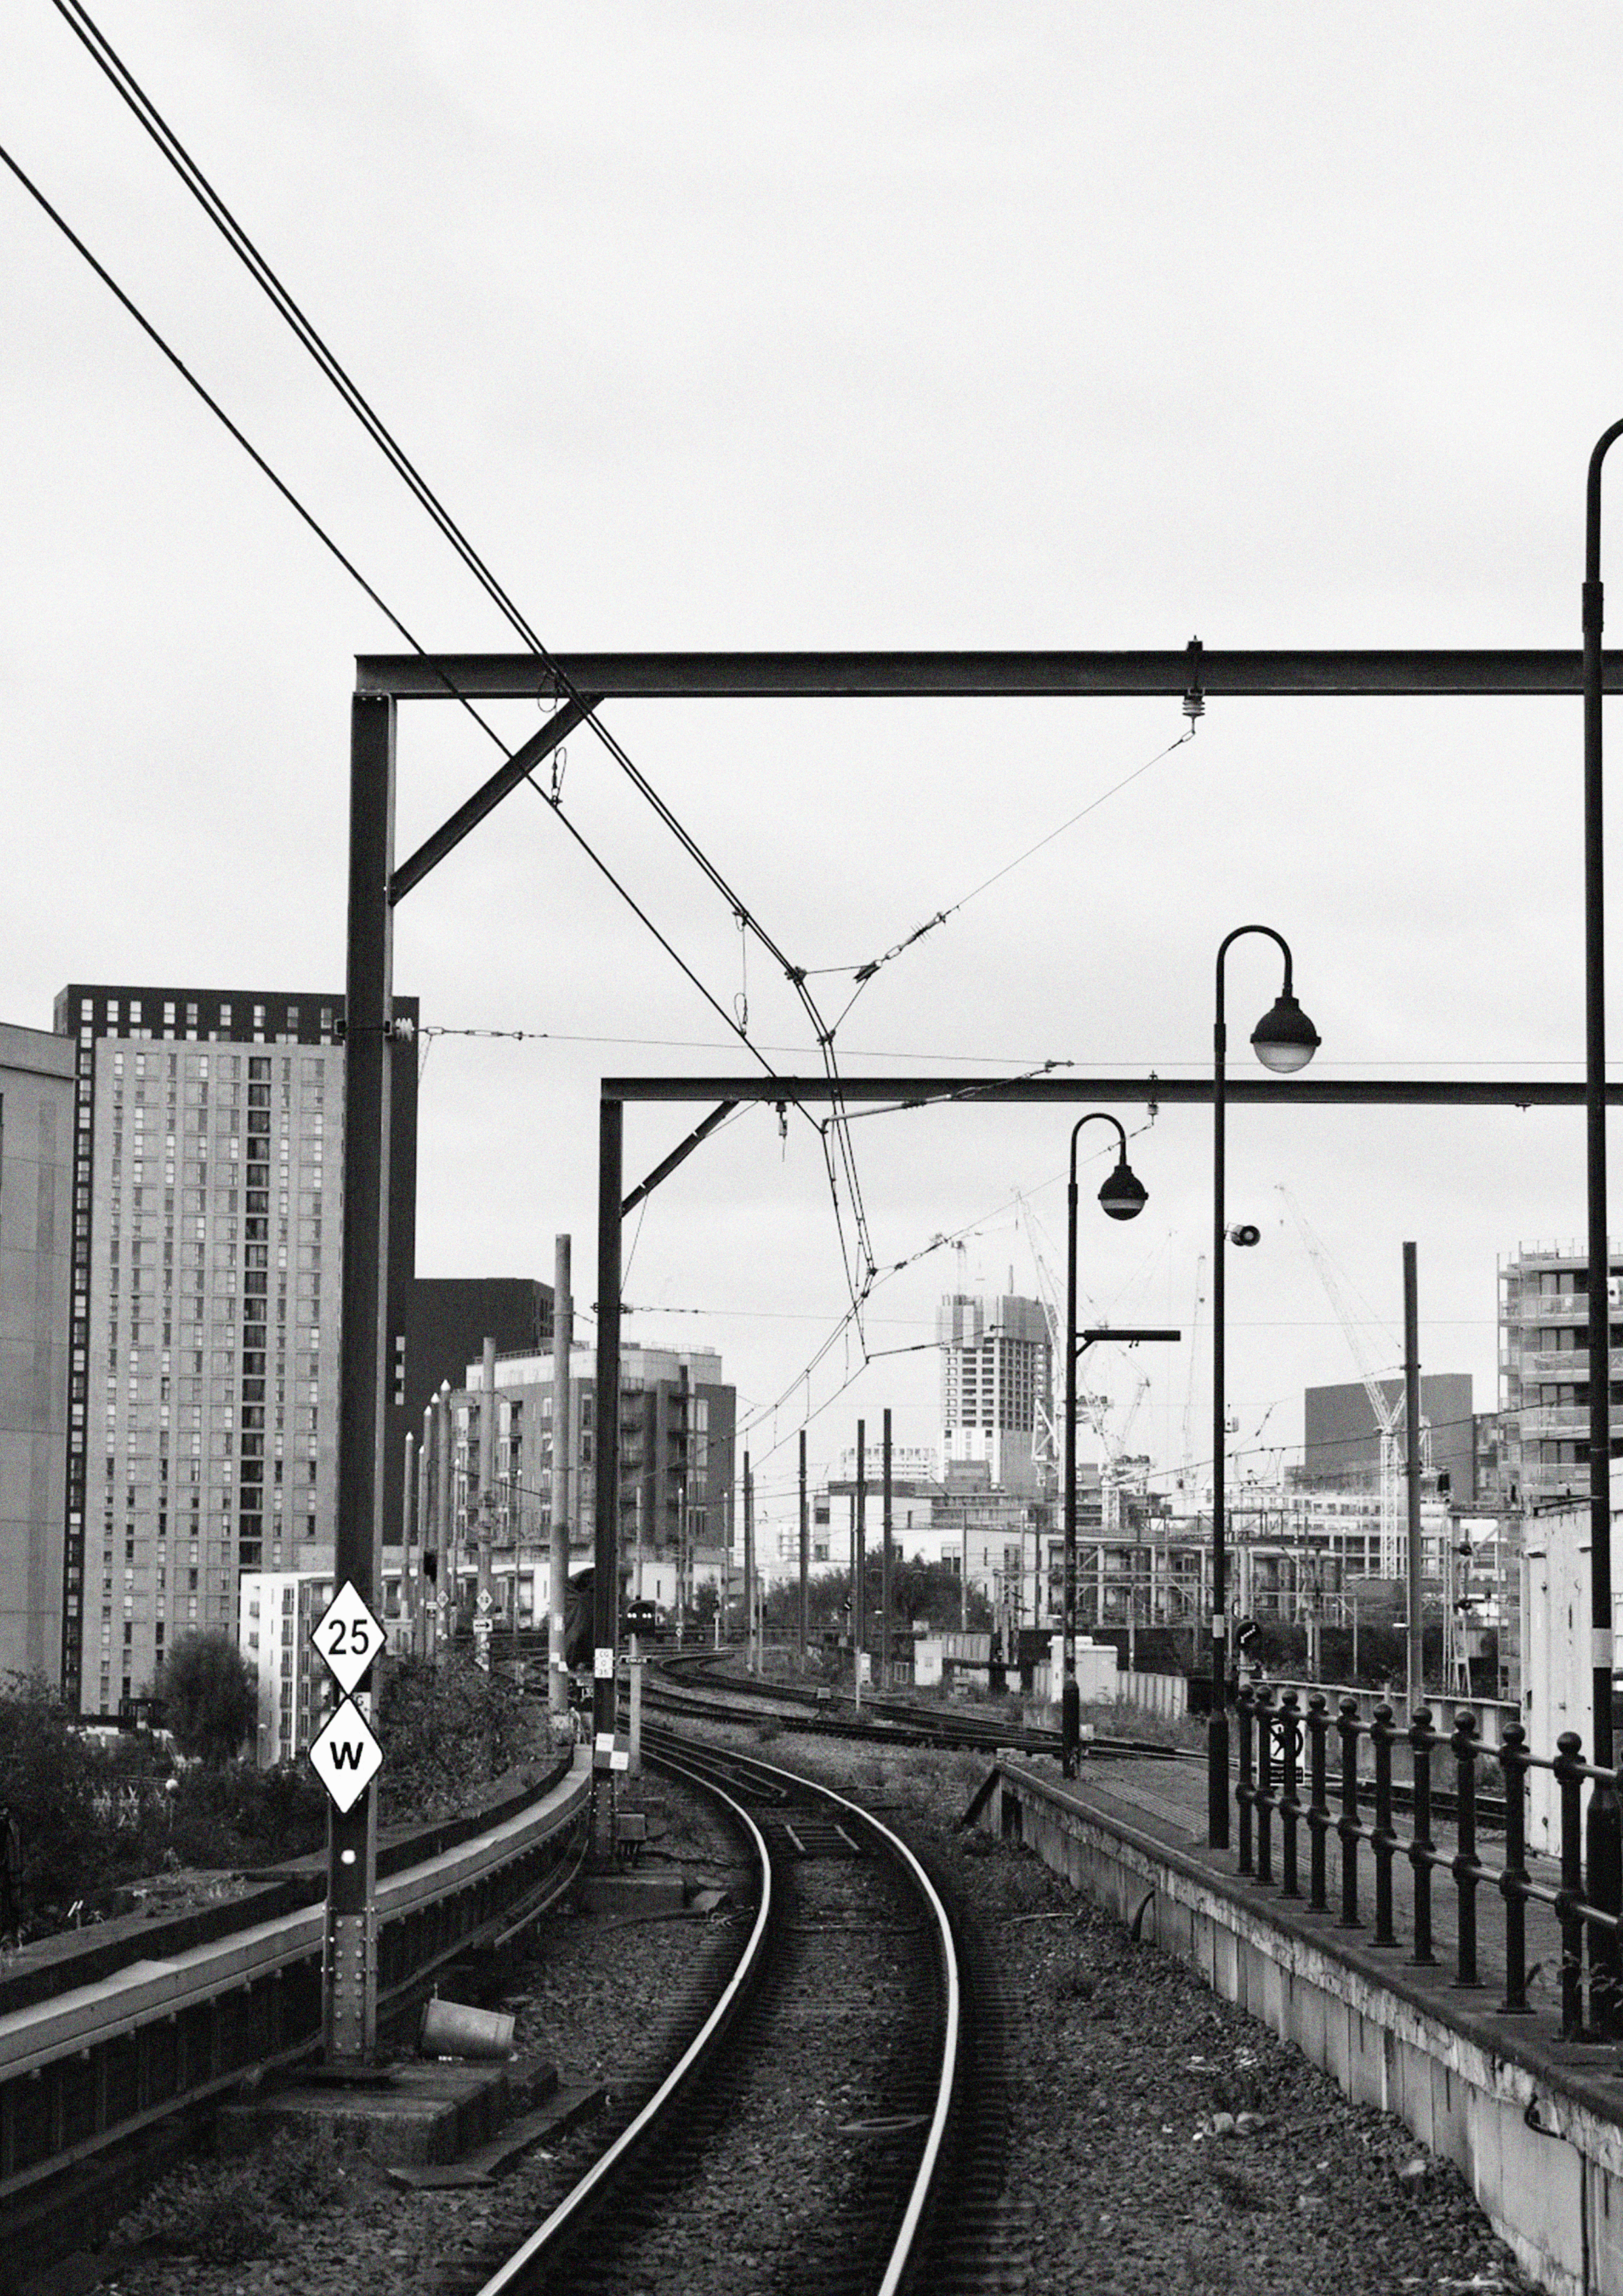 Black and white photograph of the metrolink rails.